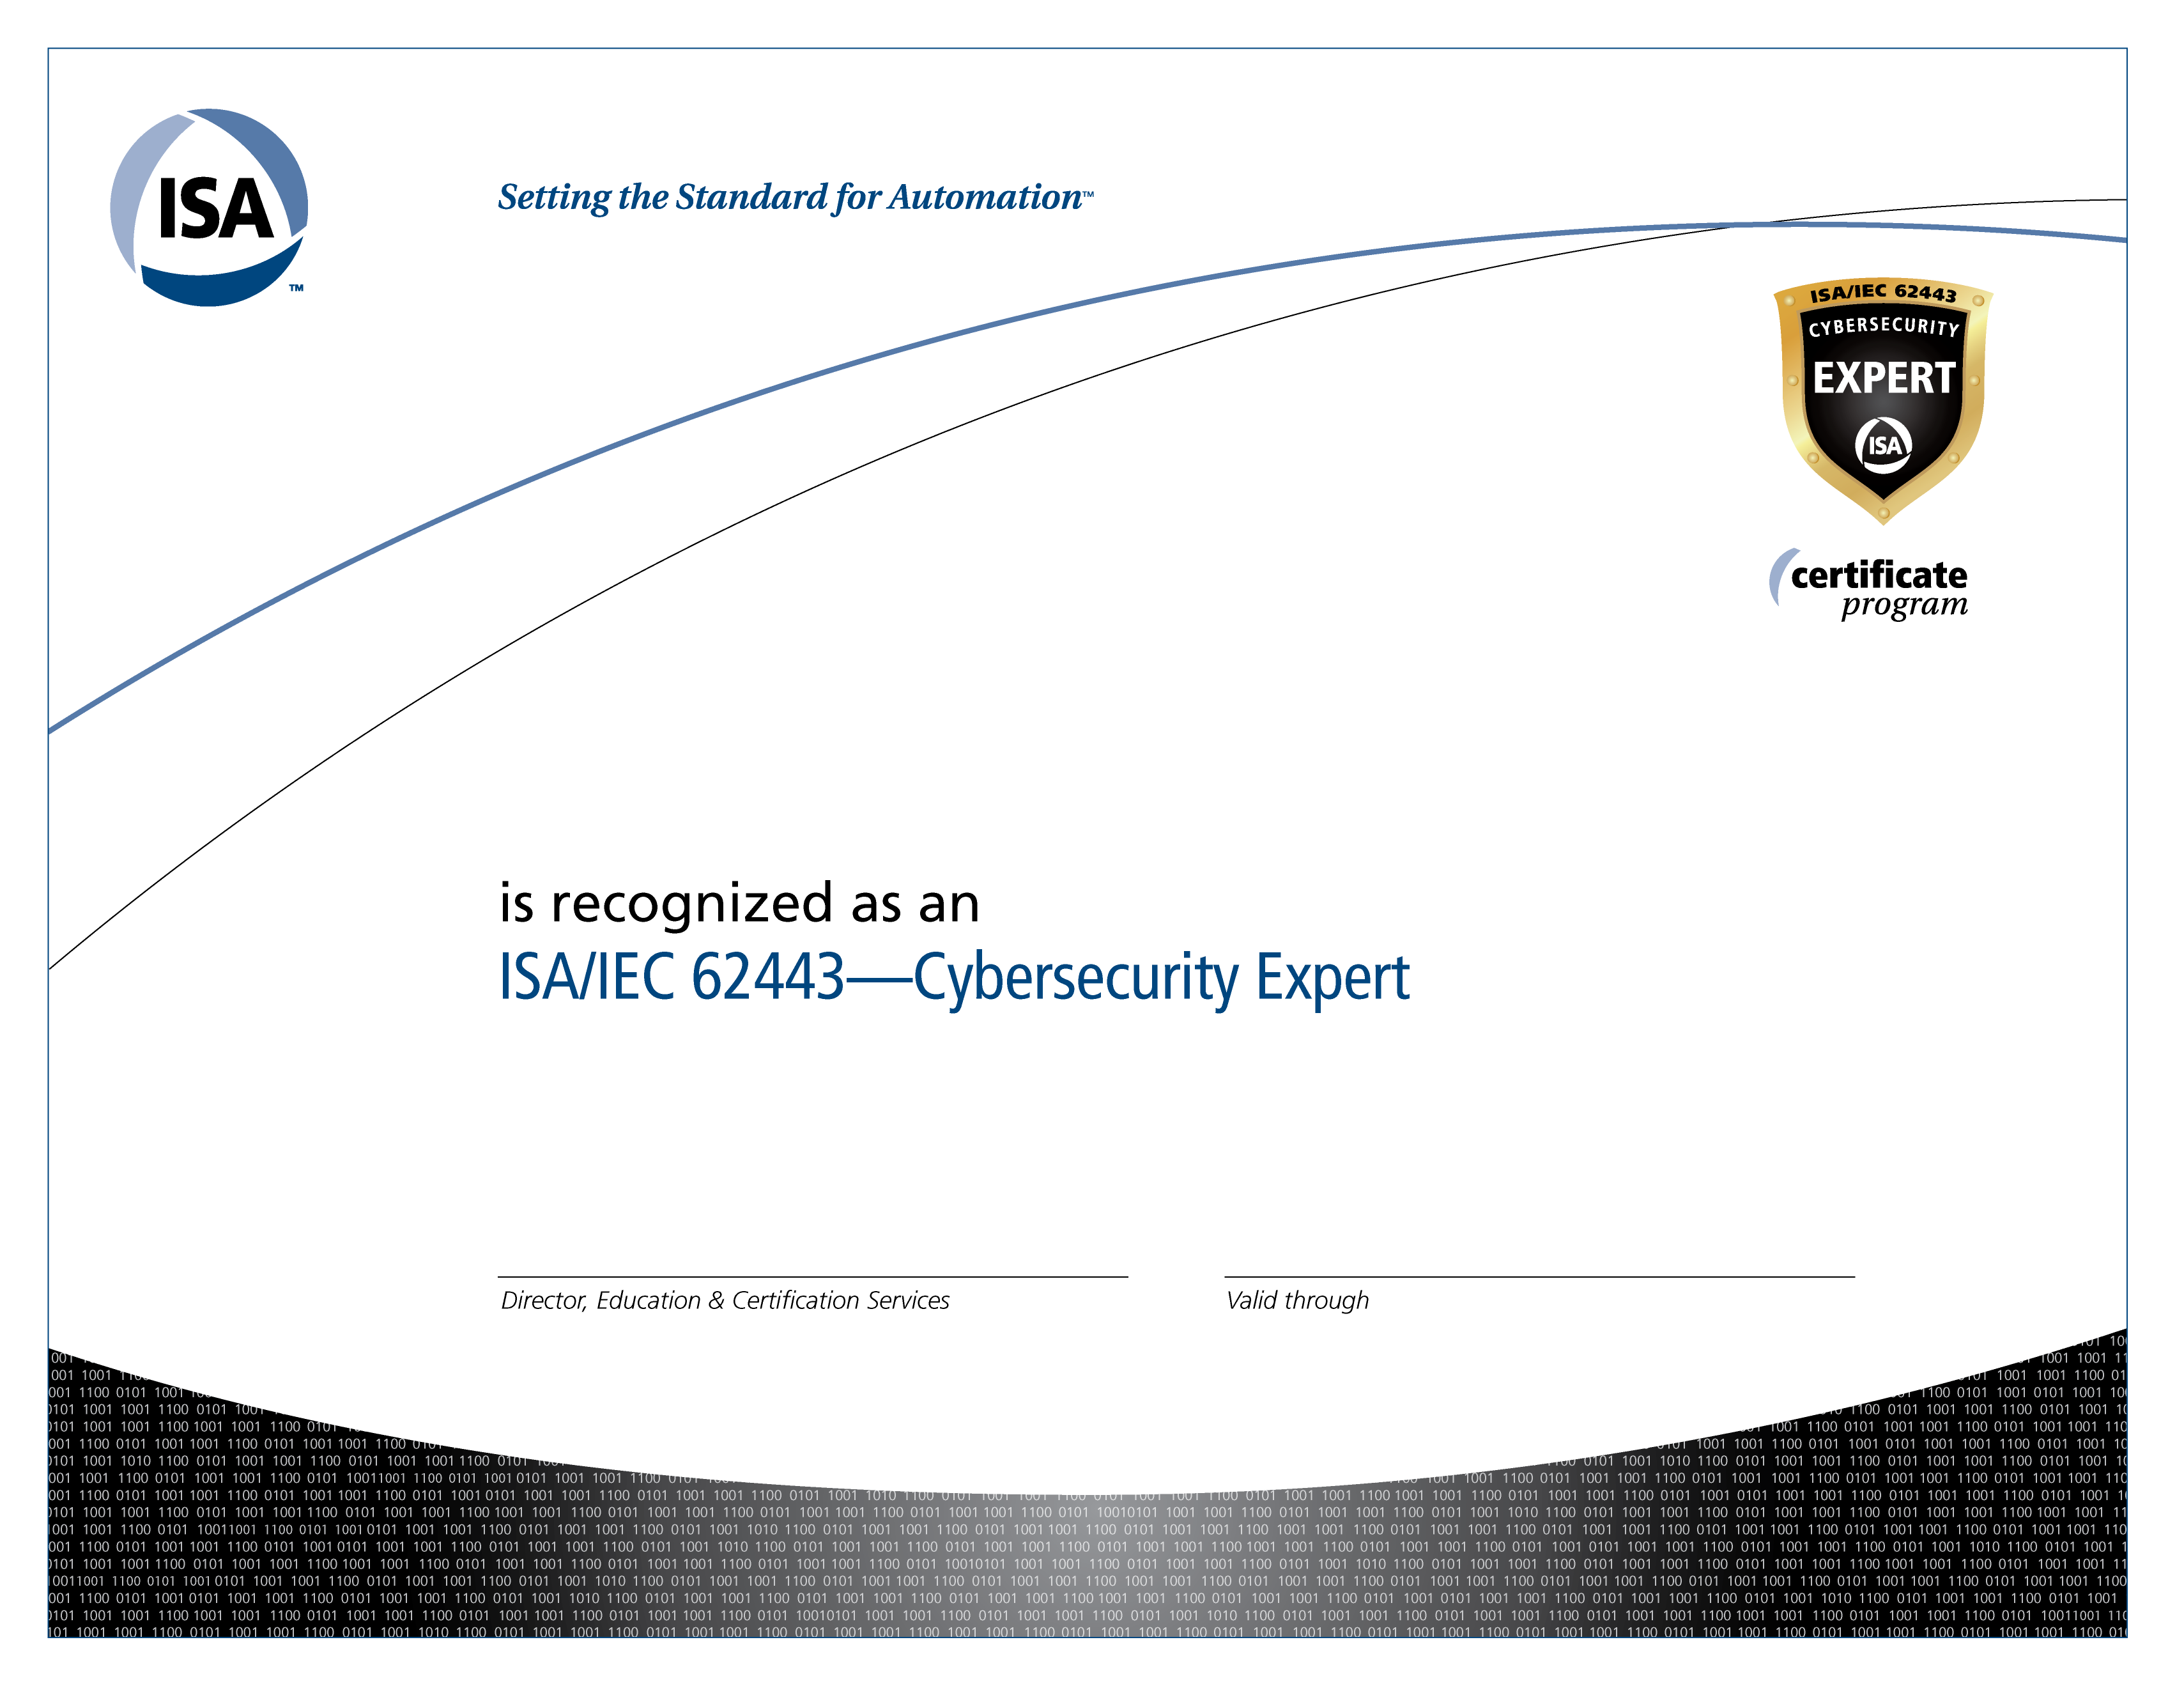 isa credential certification training certifications 2022